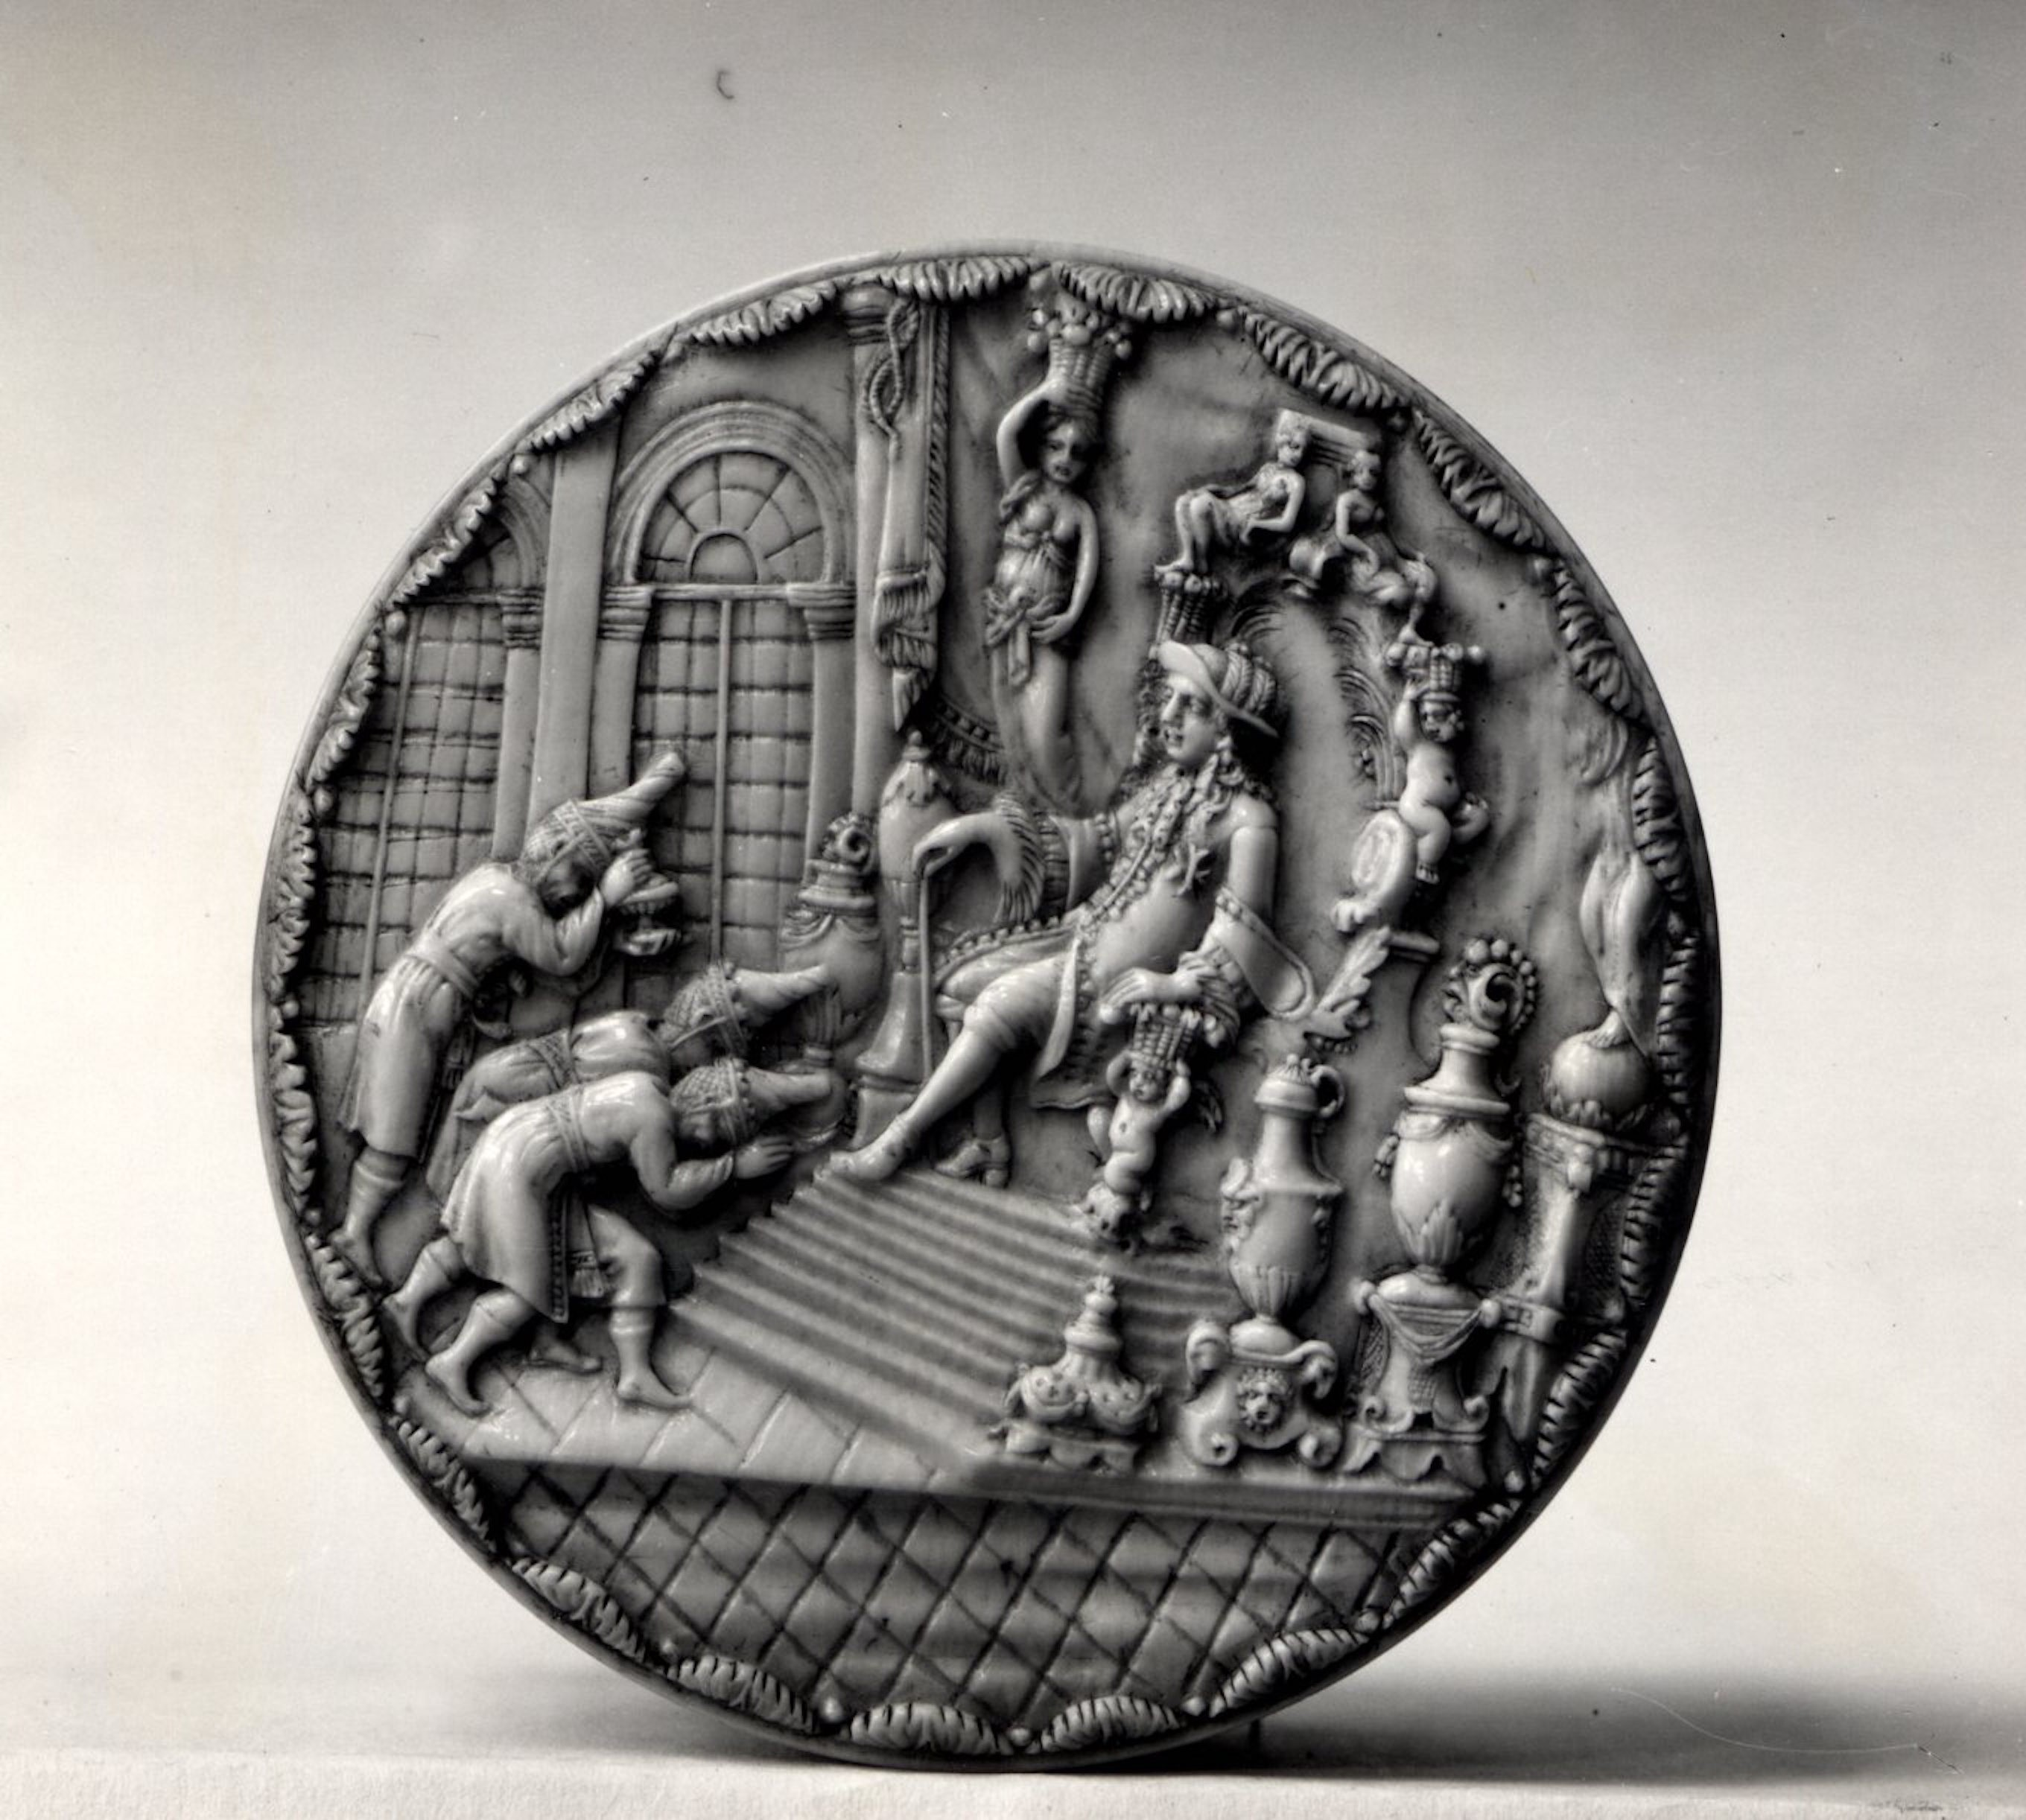 Fig. 4 : Ivory box with Louis XIV receiving Siamese Ambassadors (top view), after 1686. Ivory, 8.2 cm in diameter. London: British Museum, 1941,1209.1. Photo (CC BY-NC-SA) © Trustees of the British Museum.